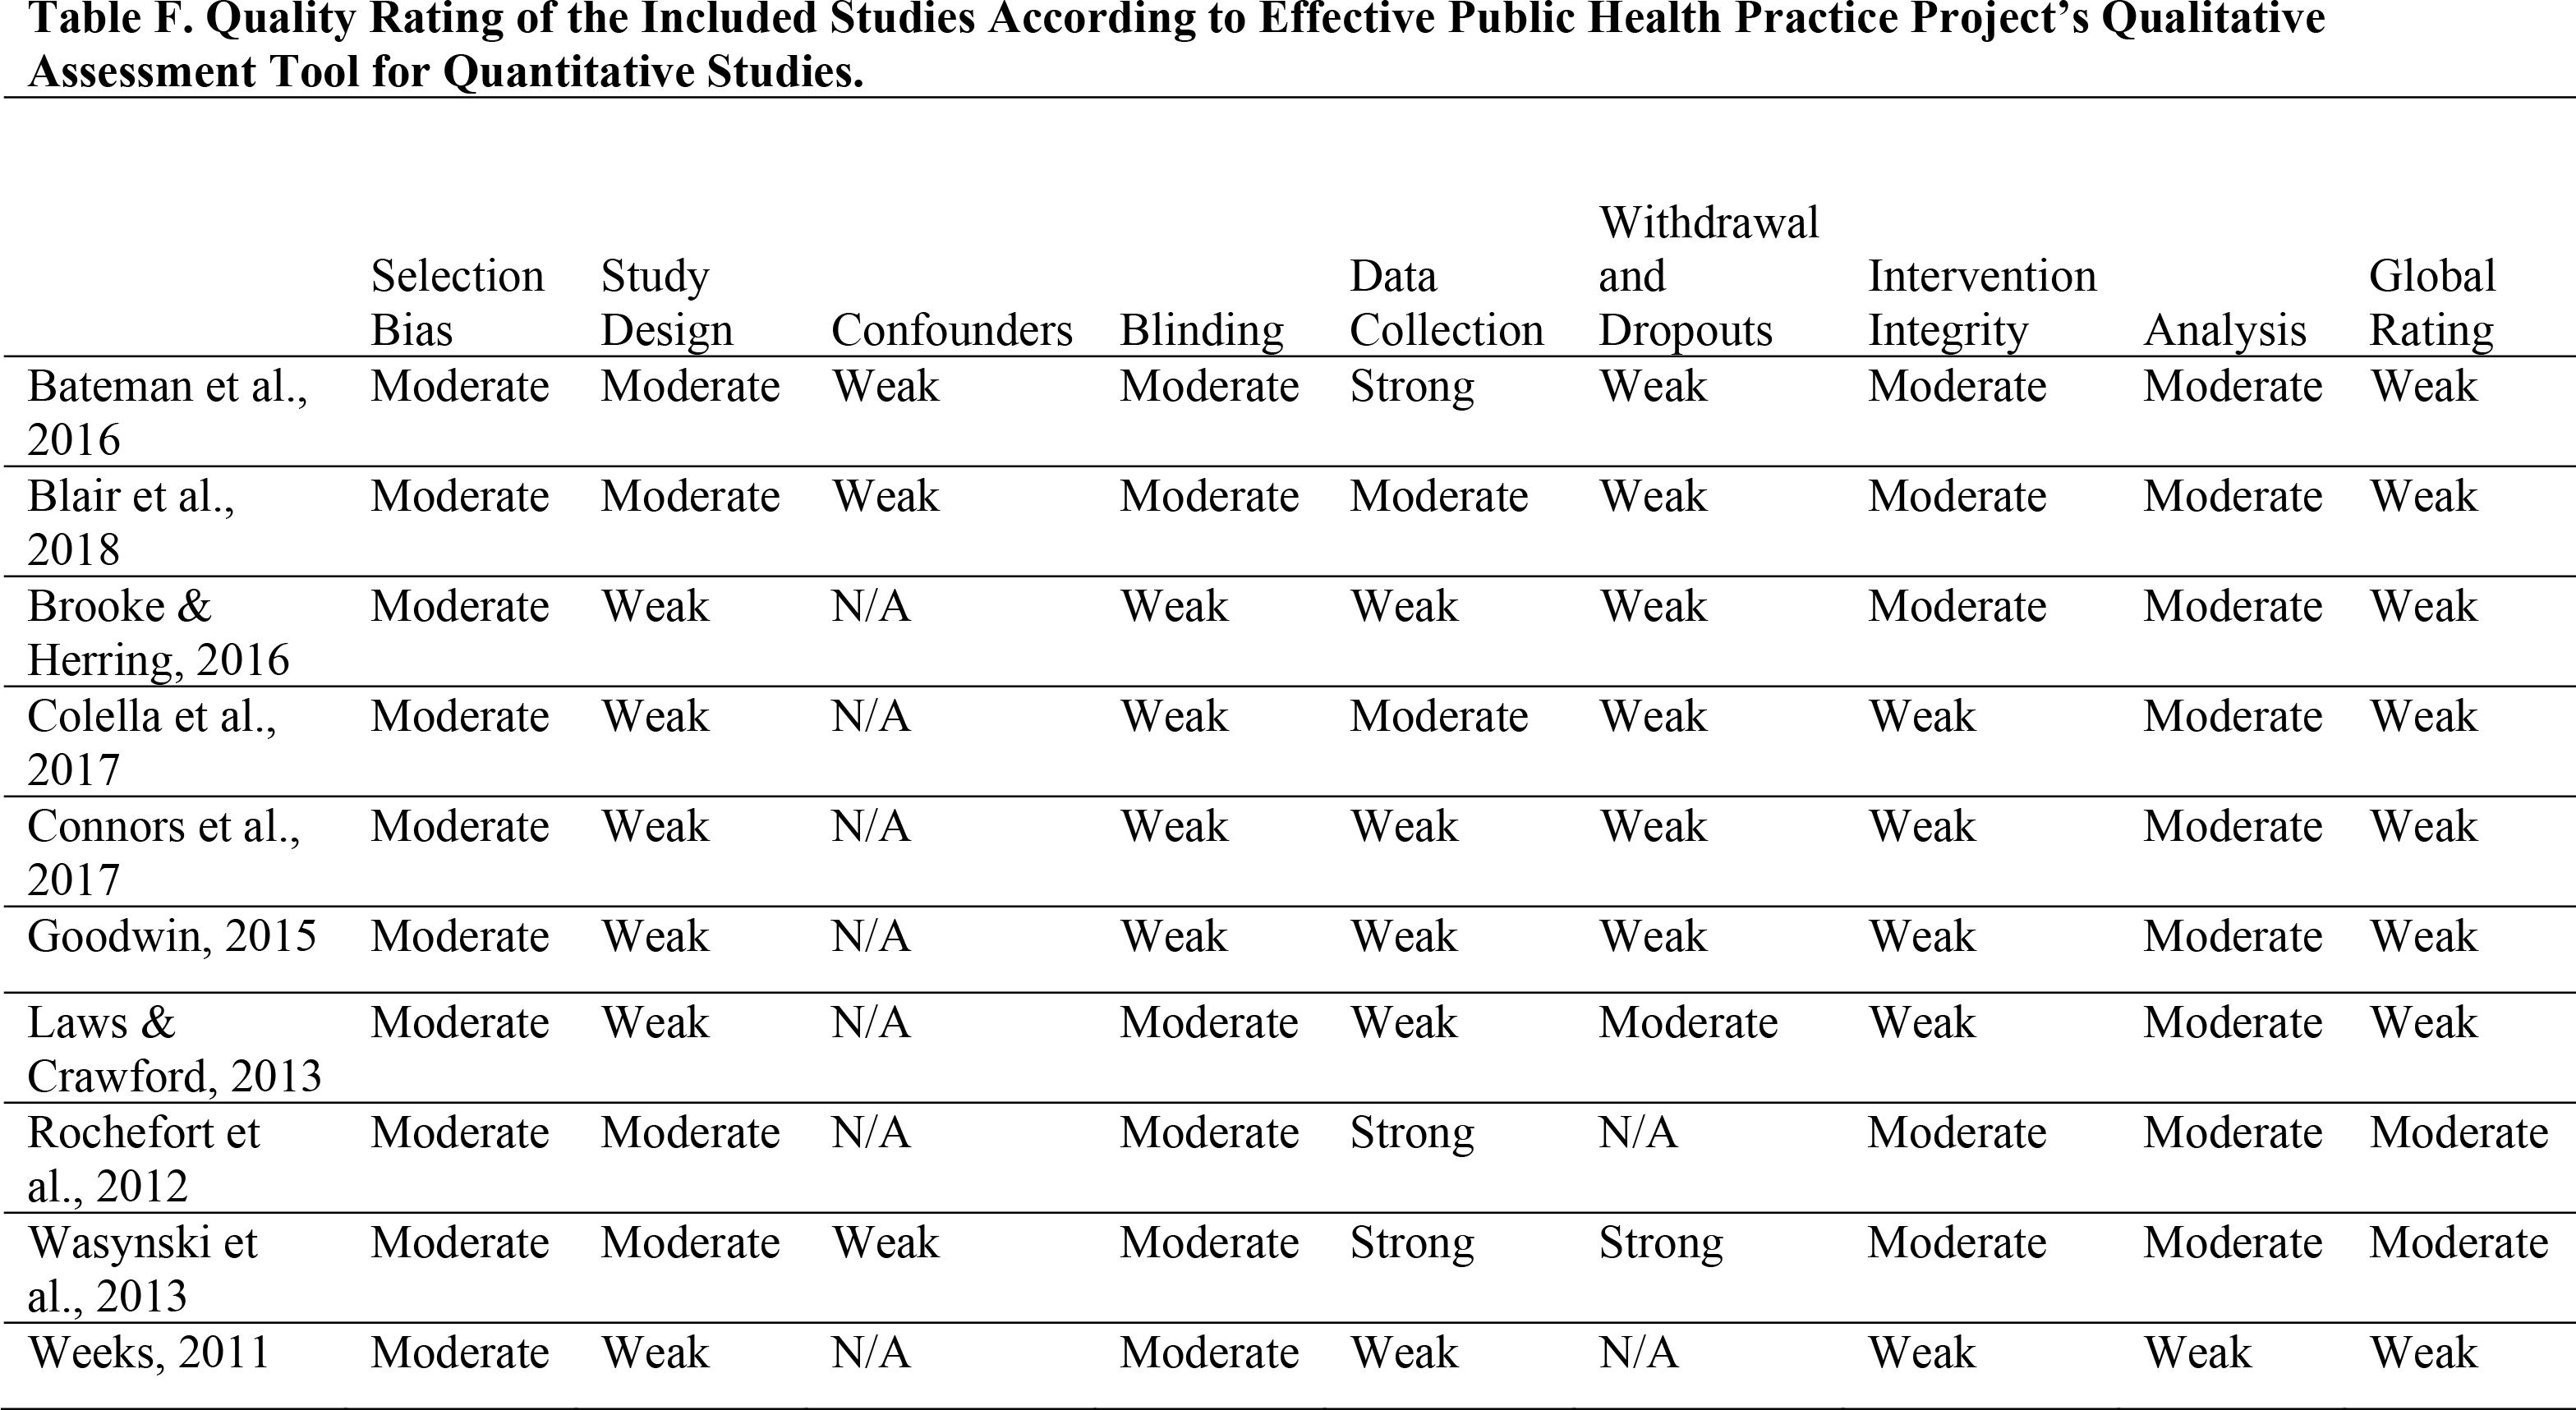 Quality Rating of the Included Studies According to Effective Public Health Practice Project's Qualitative Assessment Tool for Quantitative Studies.